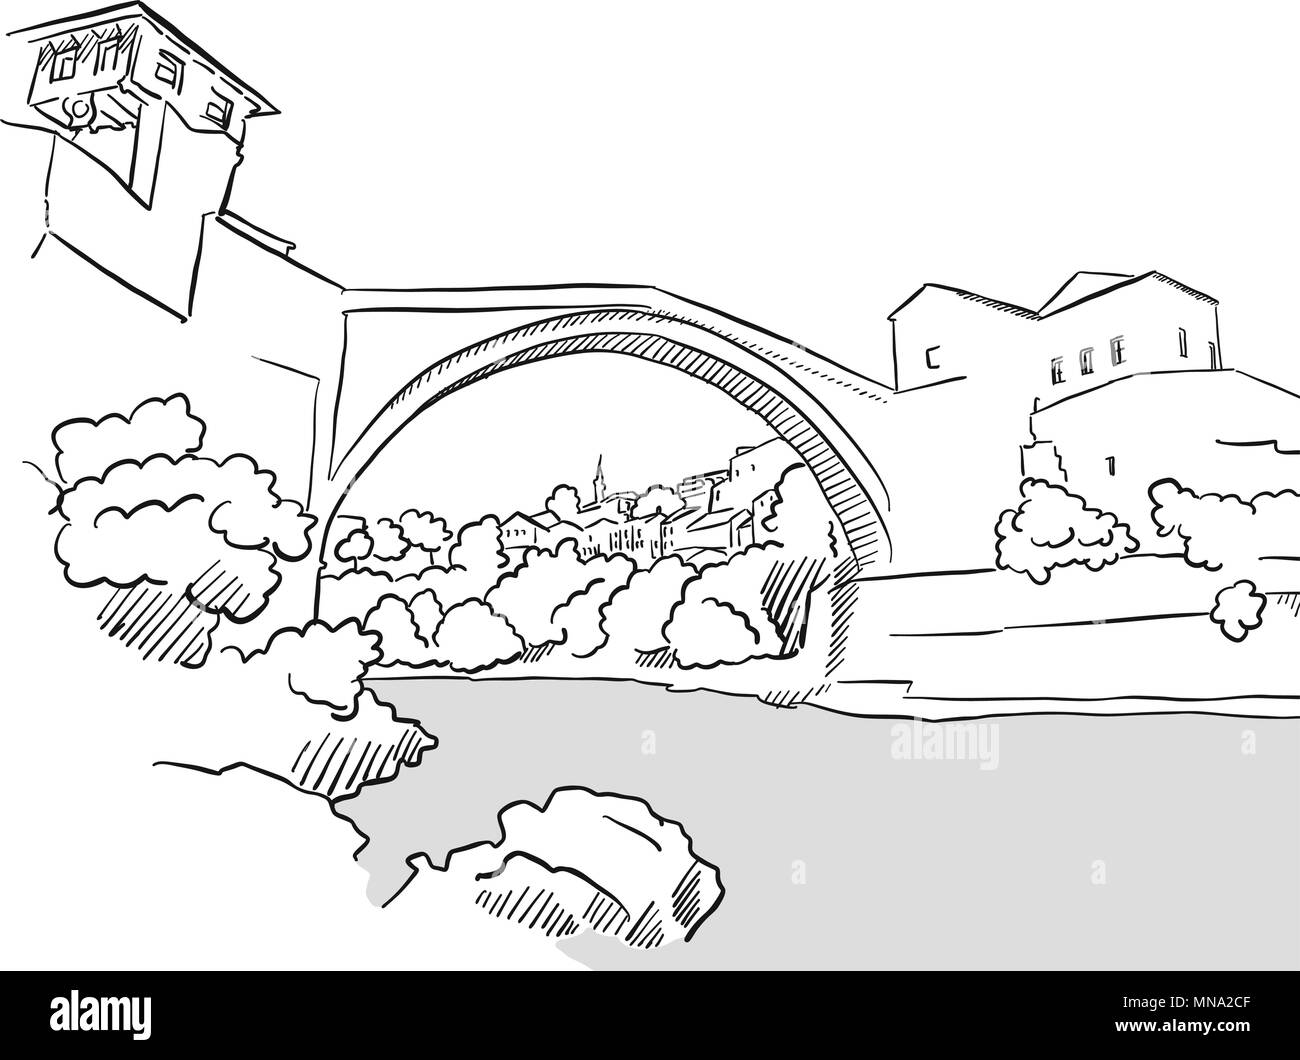 Mostar Bridge Bosnia Herzegovina Greeting Card Sketch, Hand-drawn Vector Outline Artwork Illustration - Stock Vector